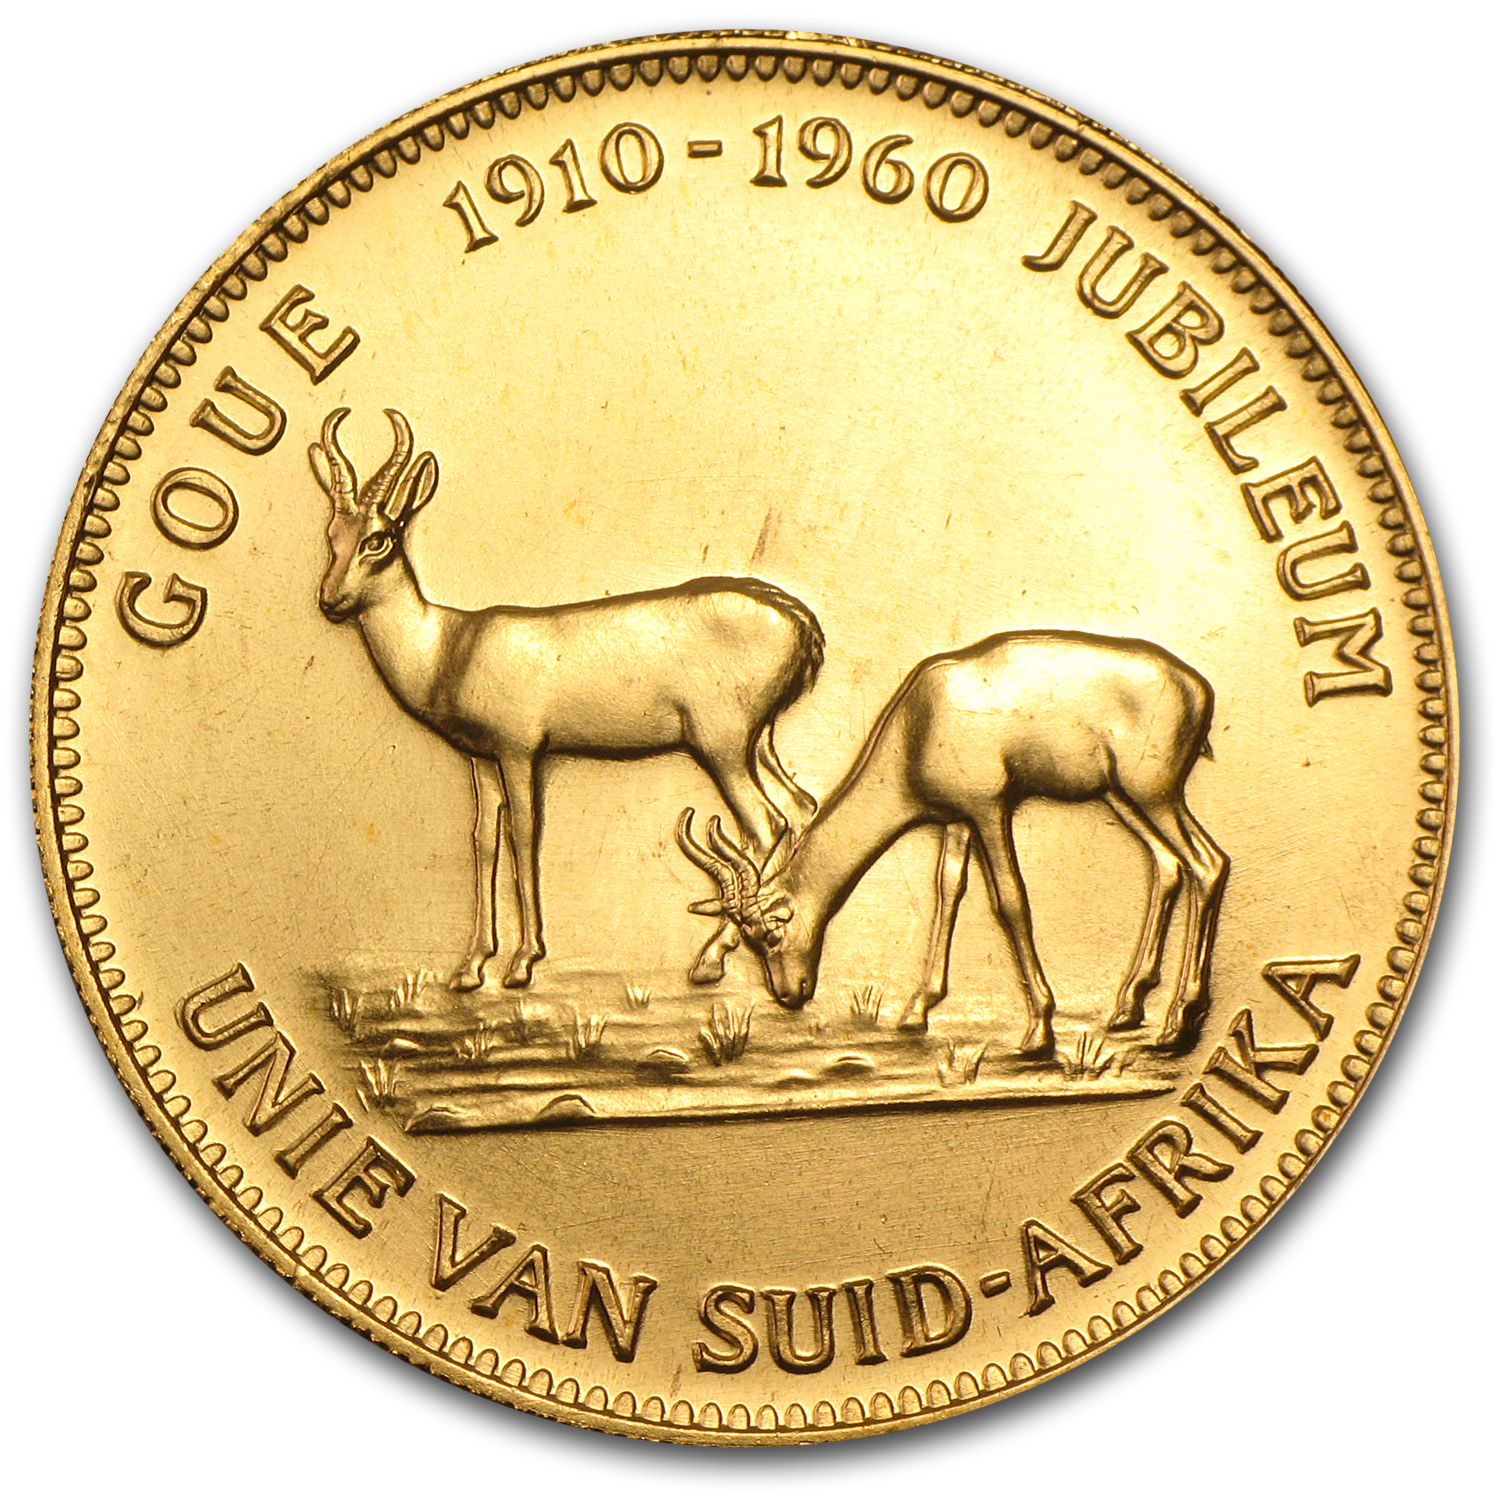 1960 South Africa Gold 1 oz Medal Golden Jubilee (Afrikaans)